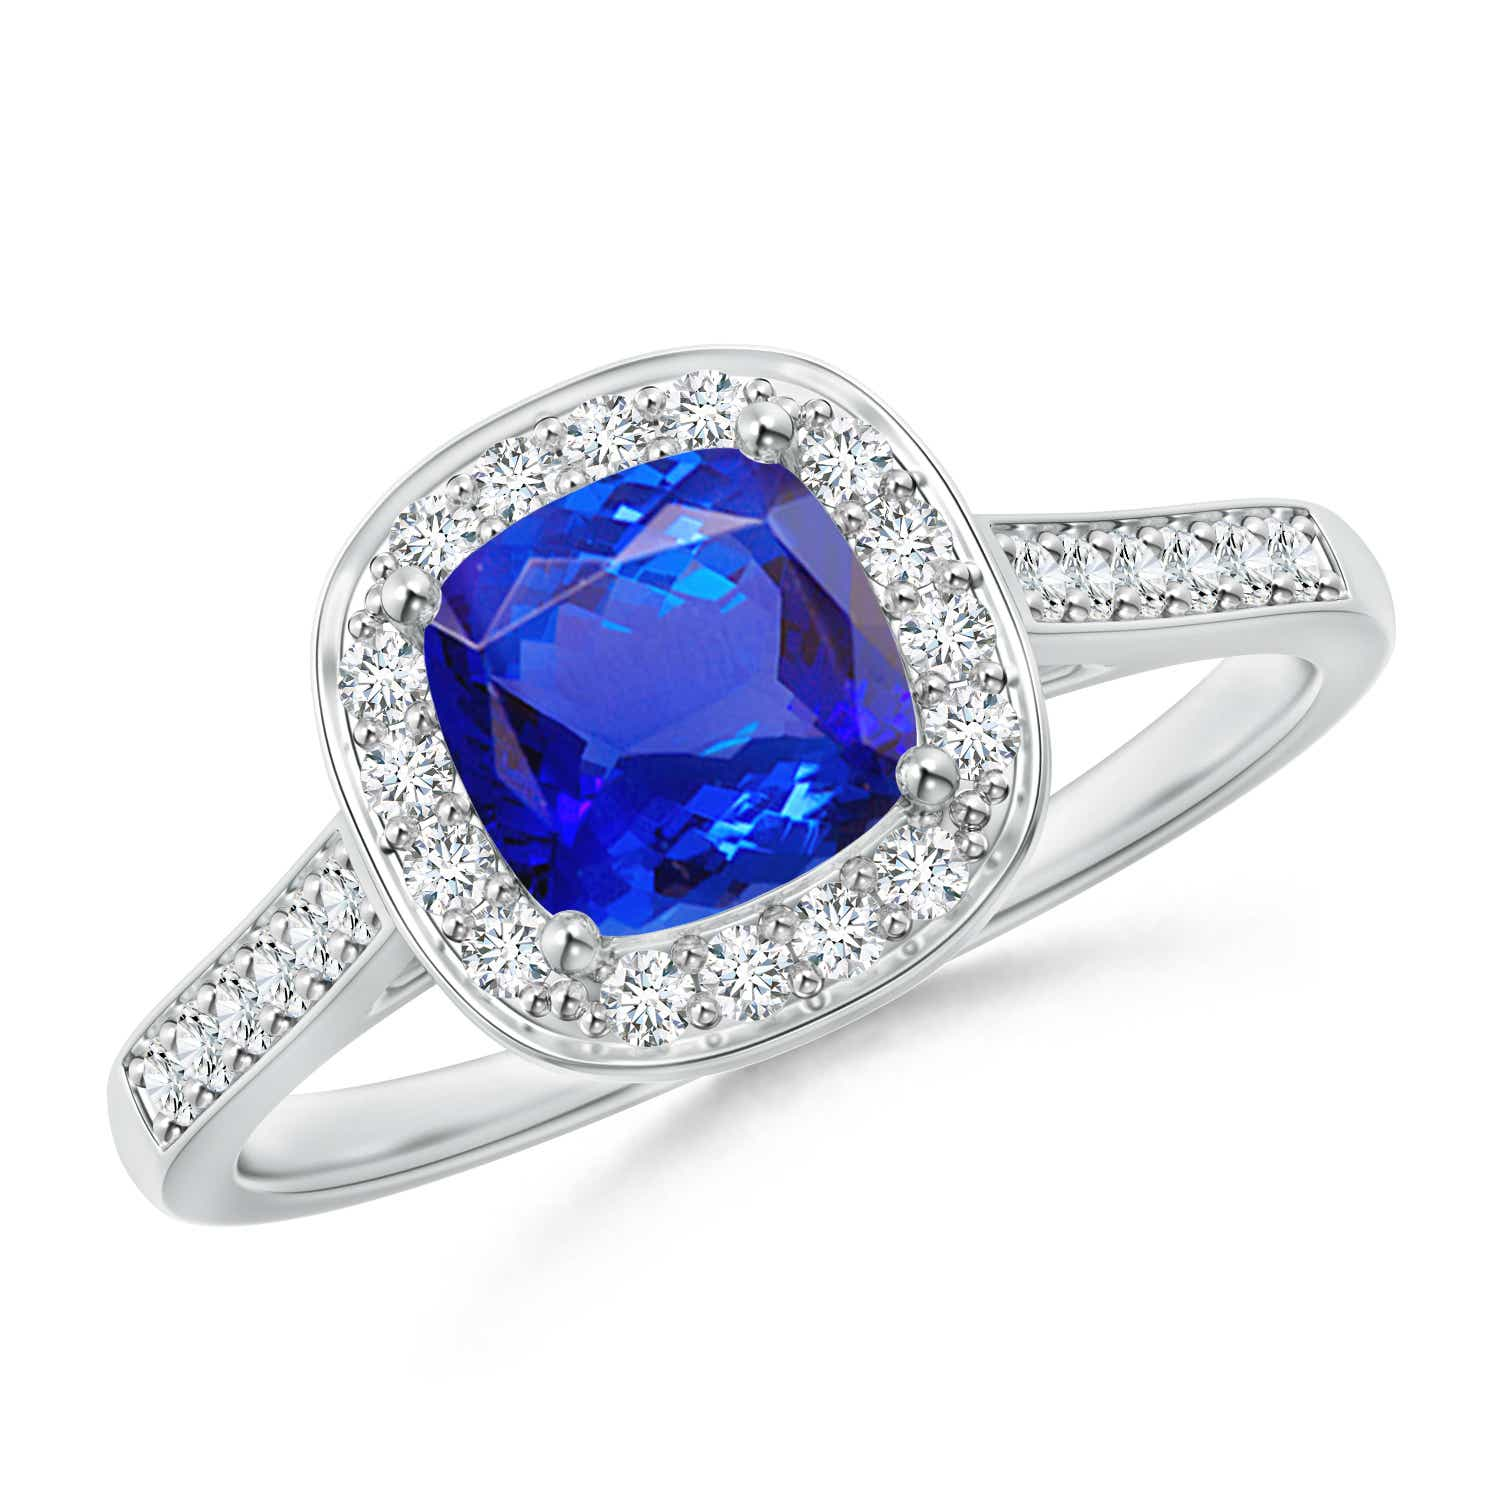 Angara Twist Shank Emerald-Cut Tanzanite Ring in Platinum 8AV8ipL